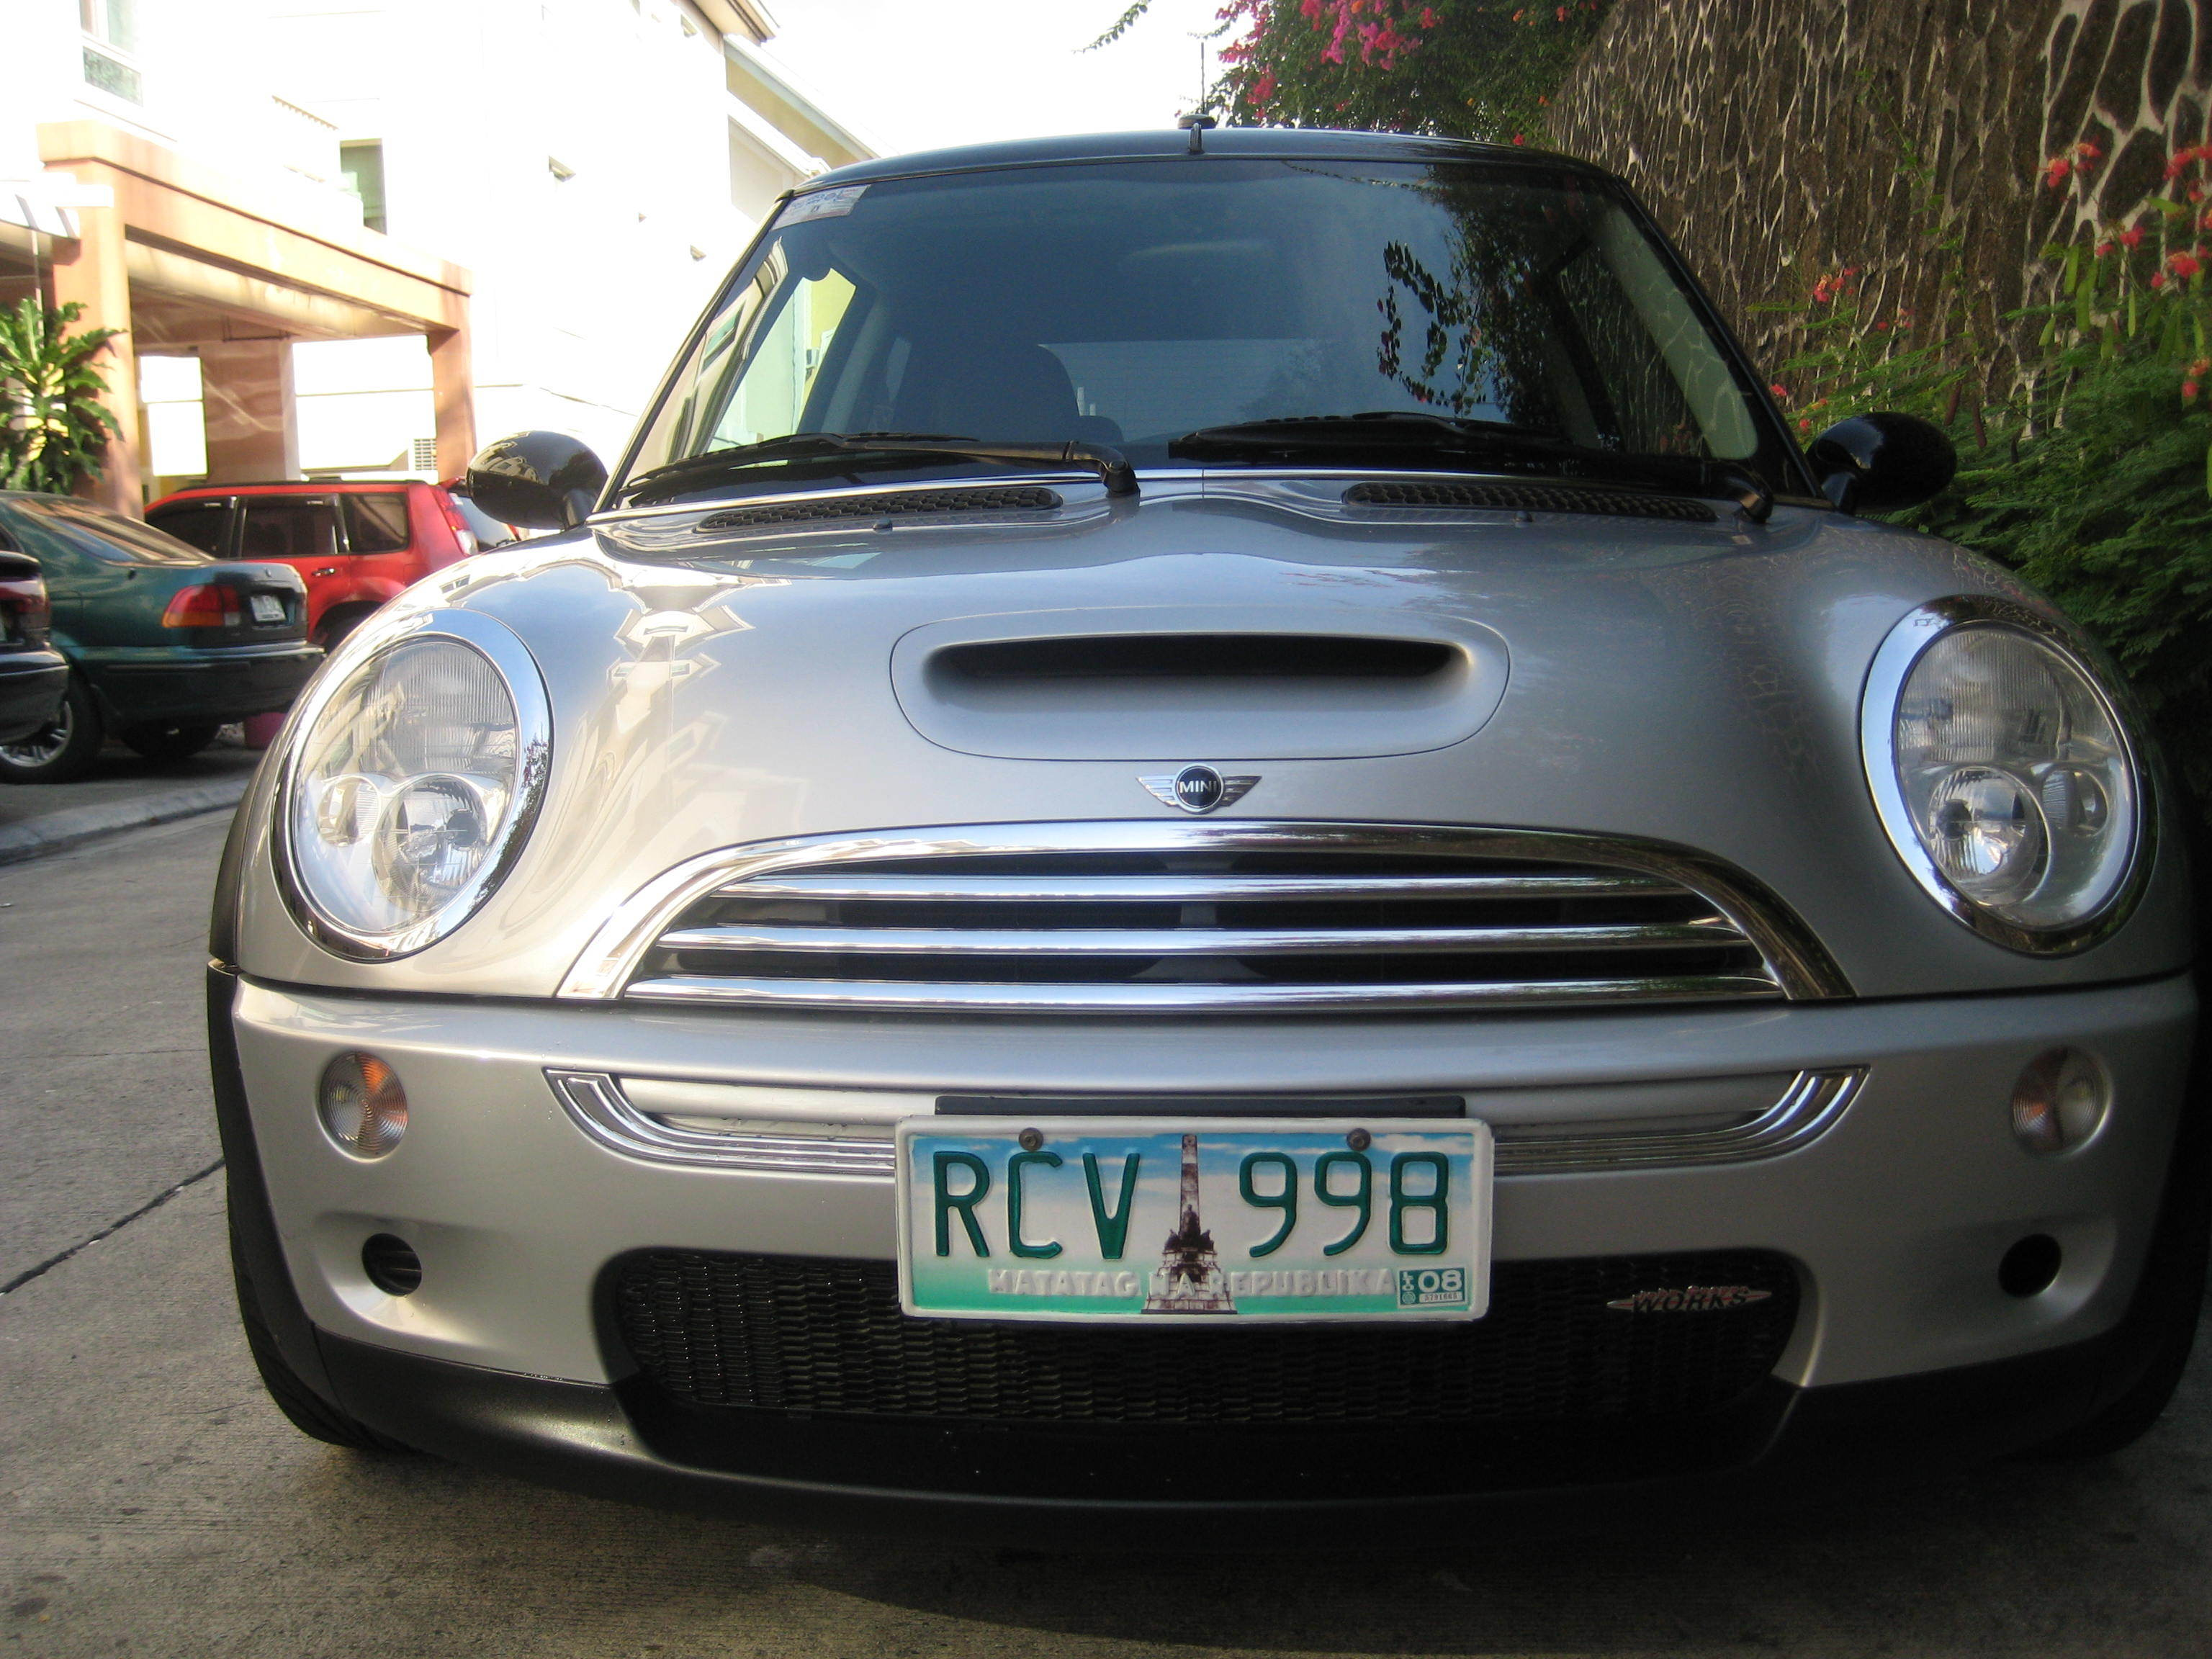 innovefon2007 39 s 2004 mini cooper in quezon city. Black Bedroom Furniture Sets. Home Design Ideas